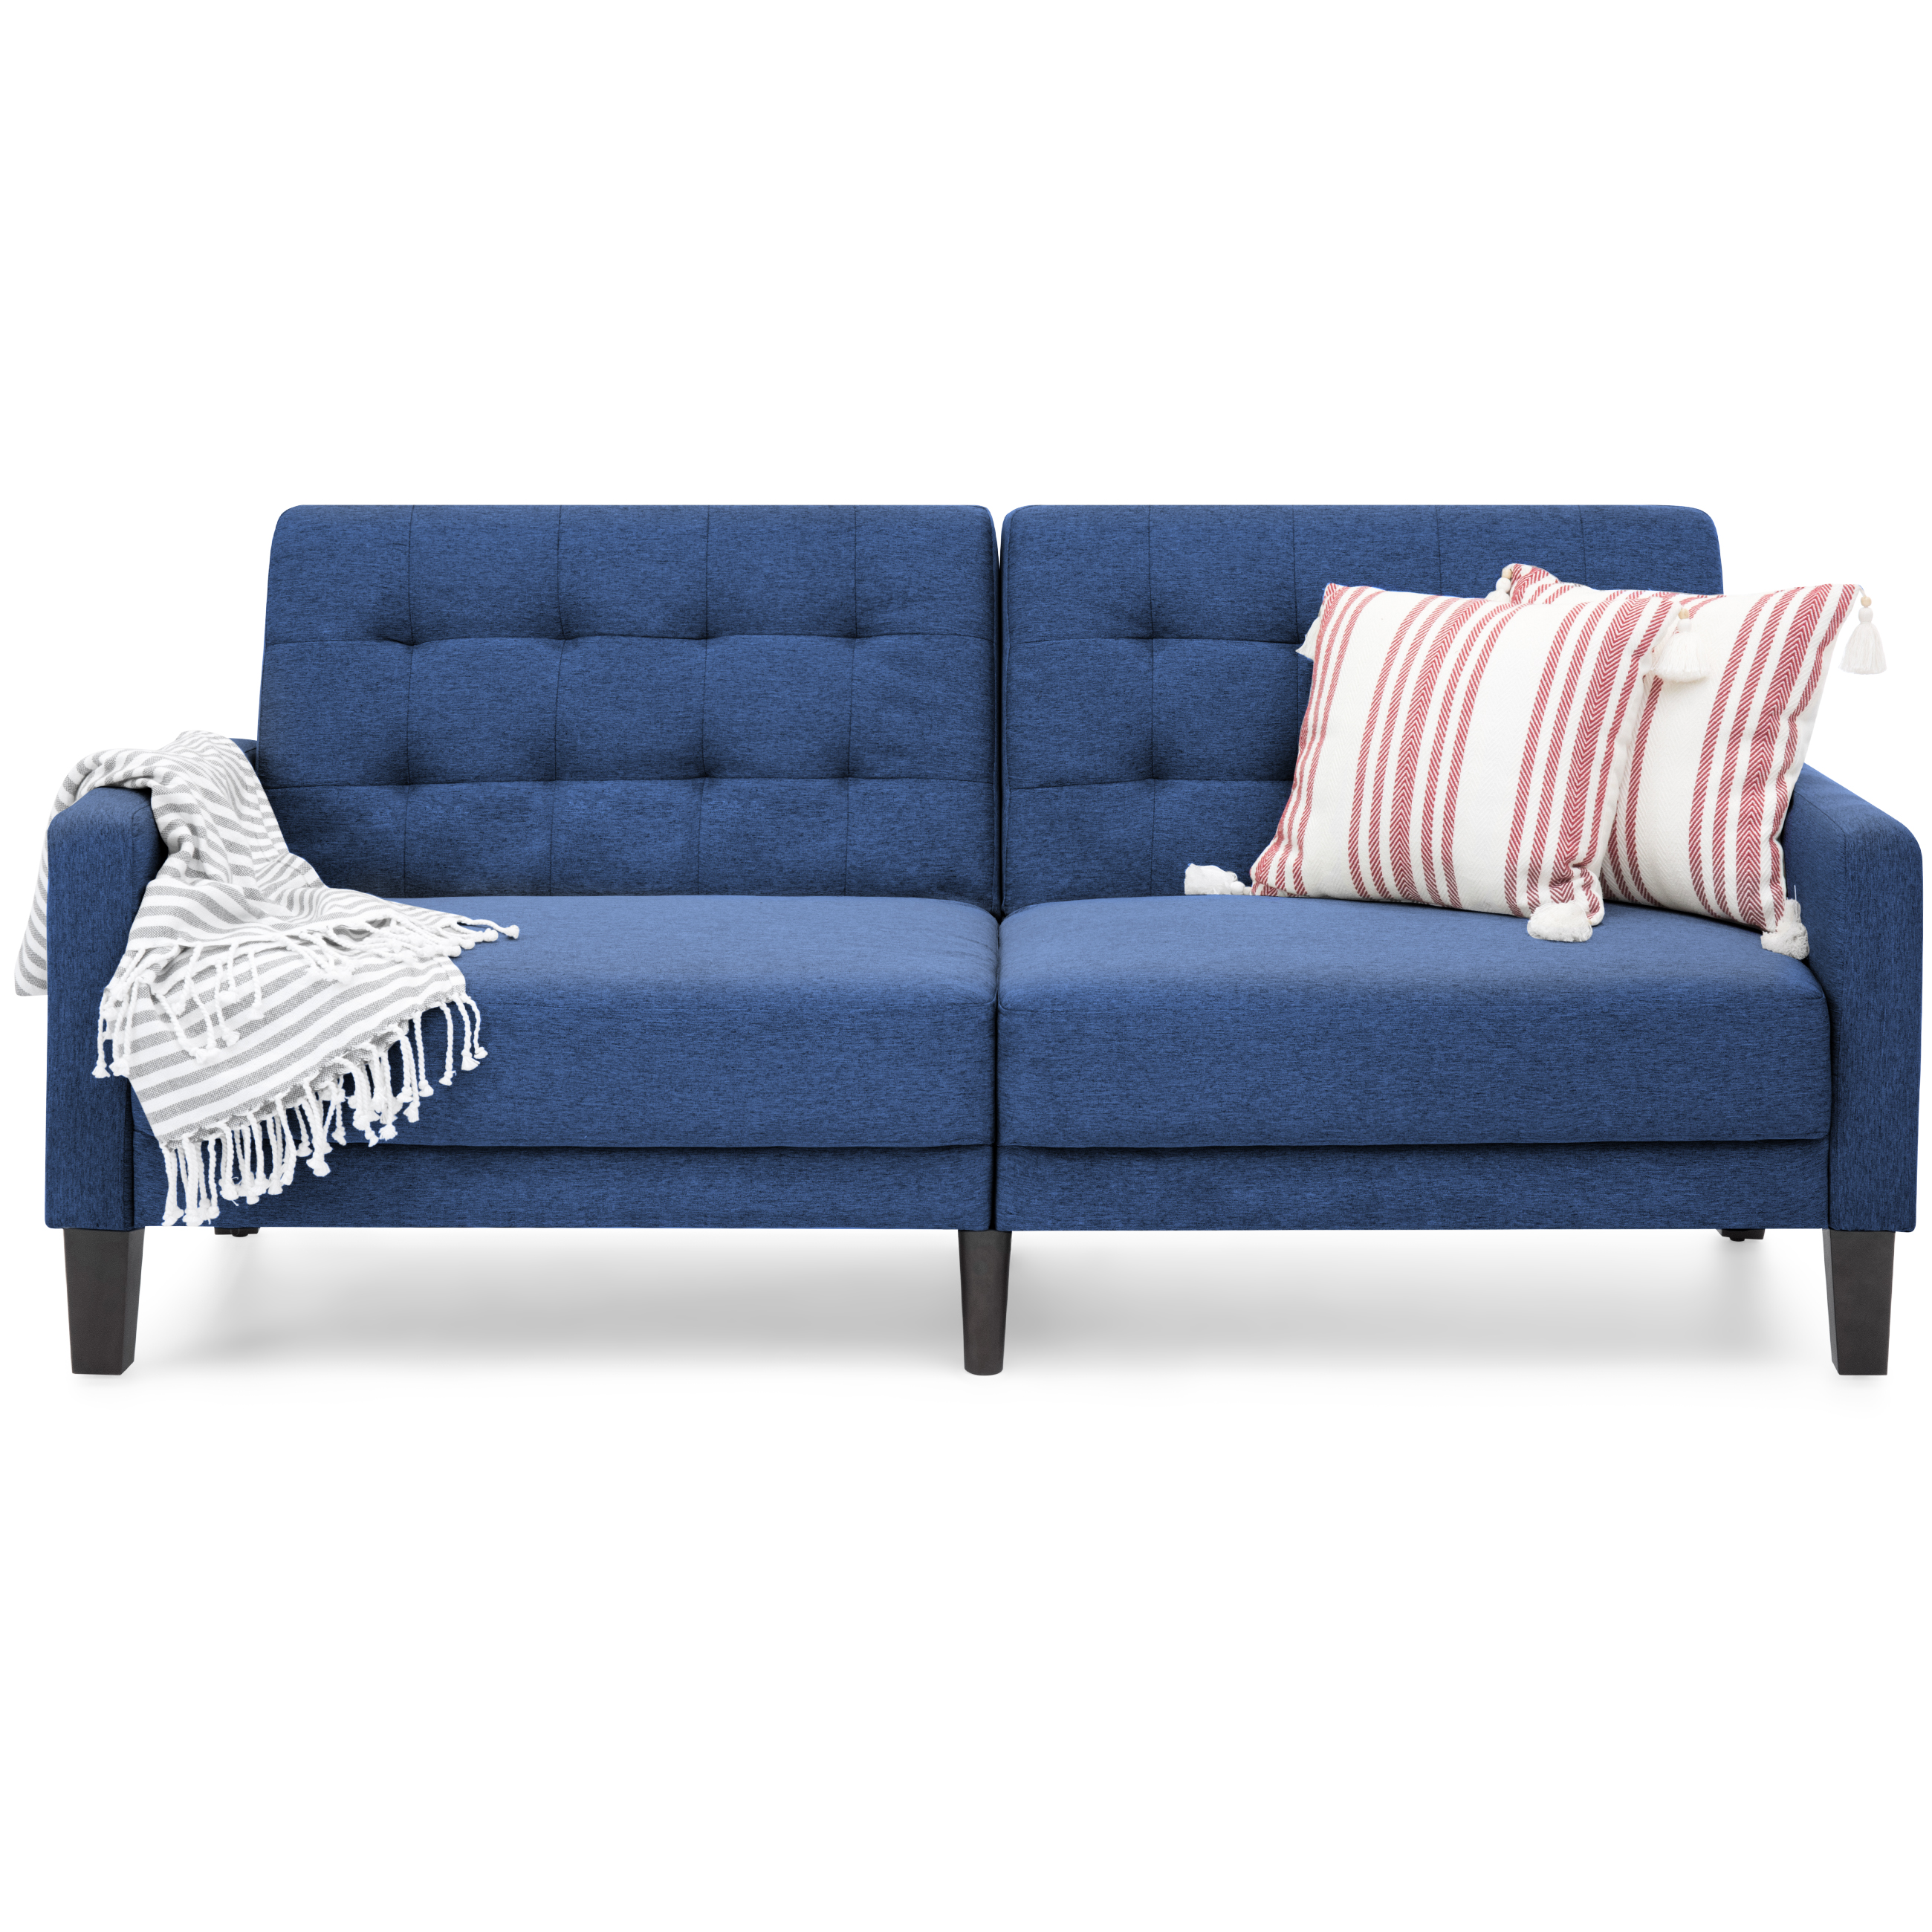 Best Choice Products Convertible Linen Upholstered Split Back Futon (Navy) by